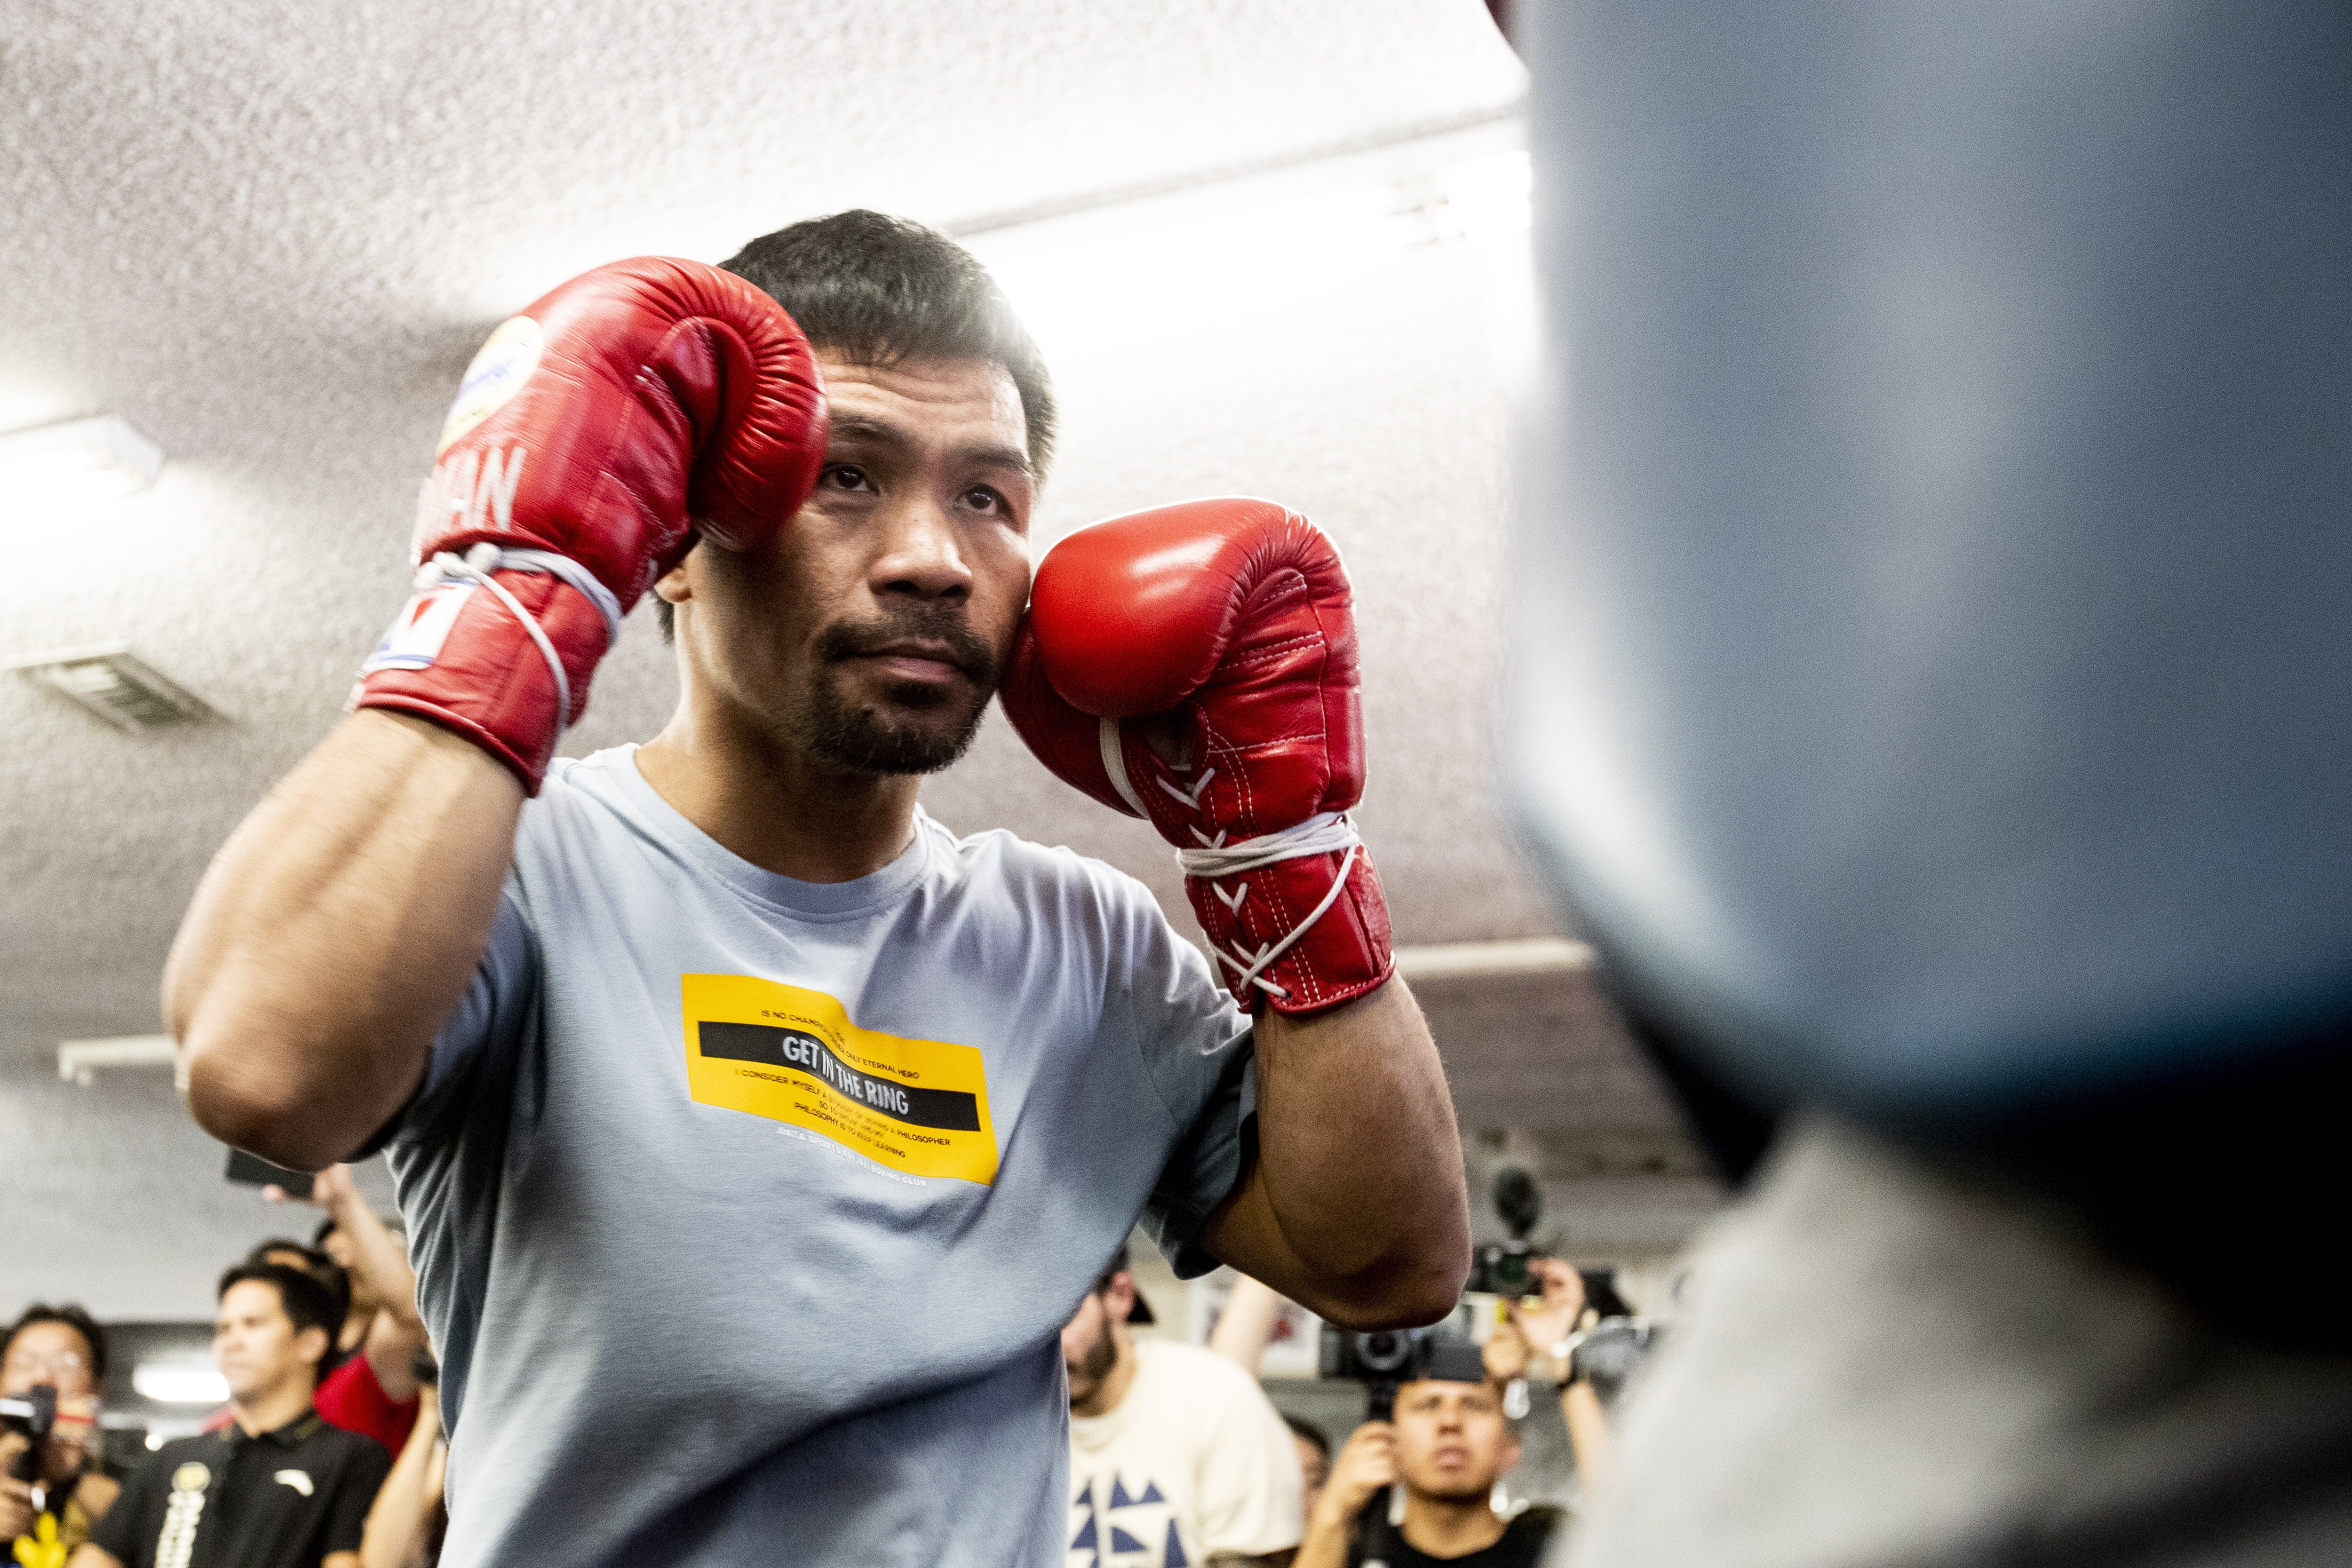 Manny Pacquiao compares himself to Tom Brady ahead of Keith Thurman